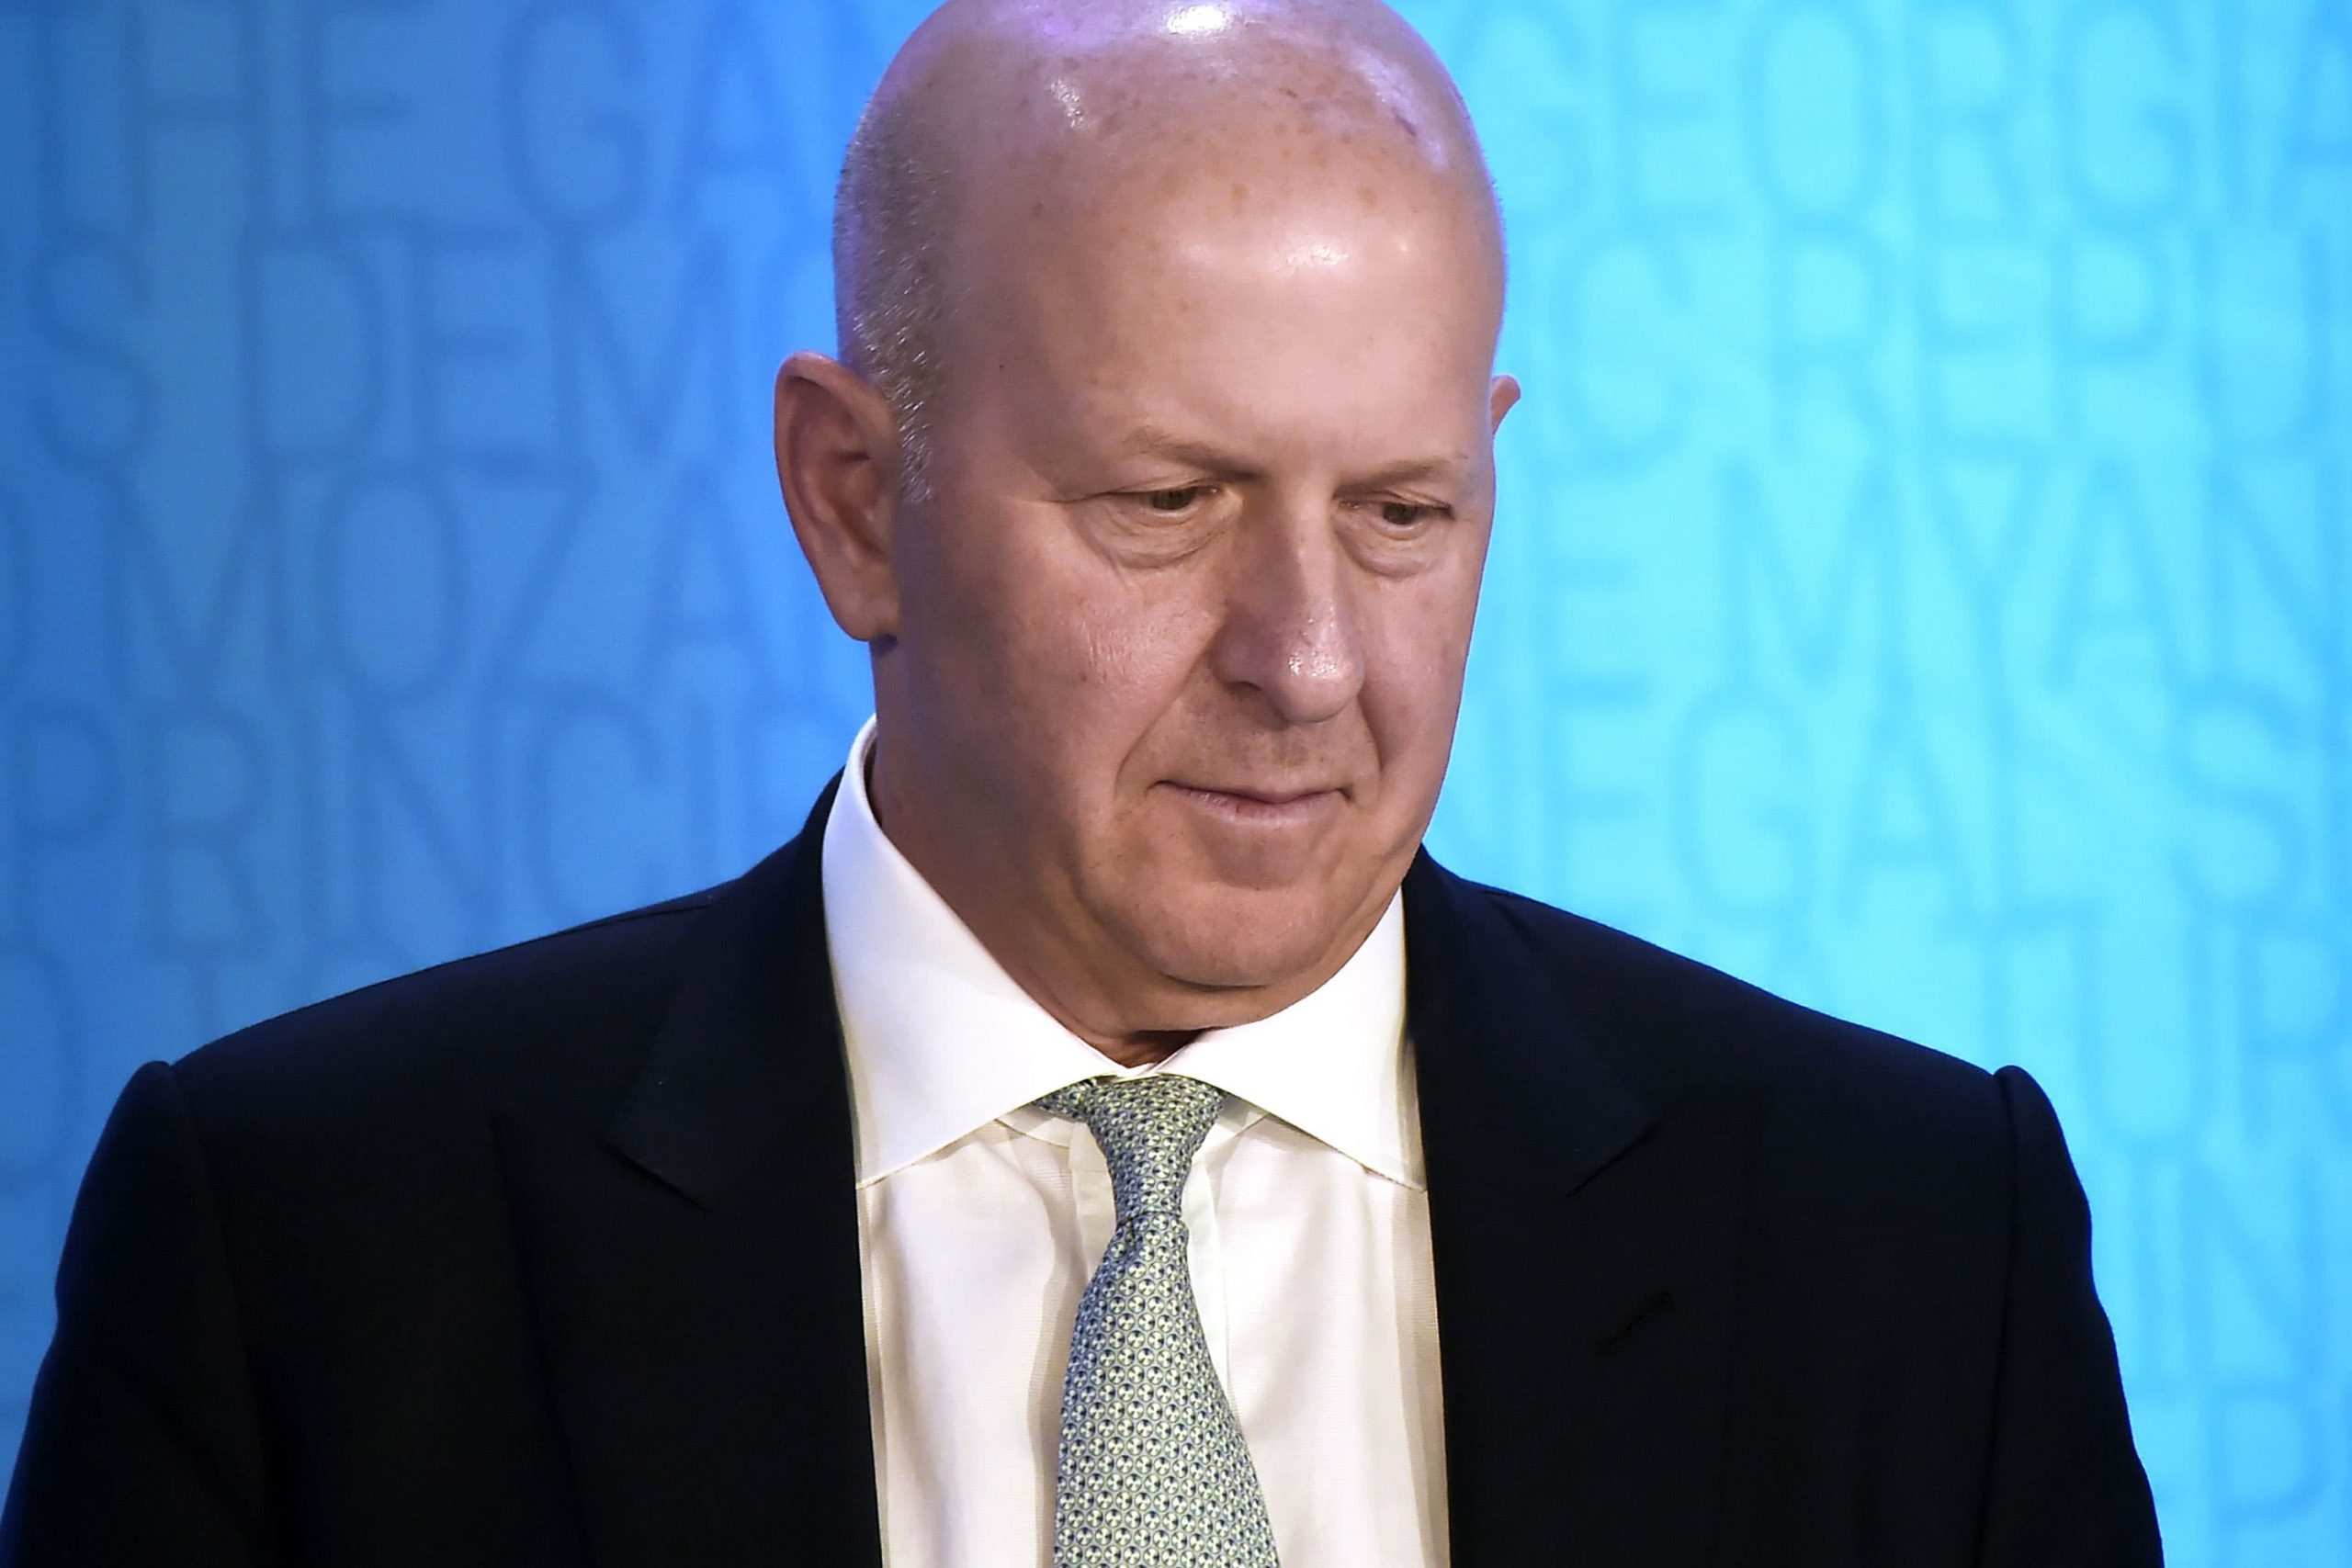 Goldman Sachs CEO David Solomon gets $10 million pay cut over bank's role in 1MDB scandal